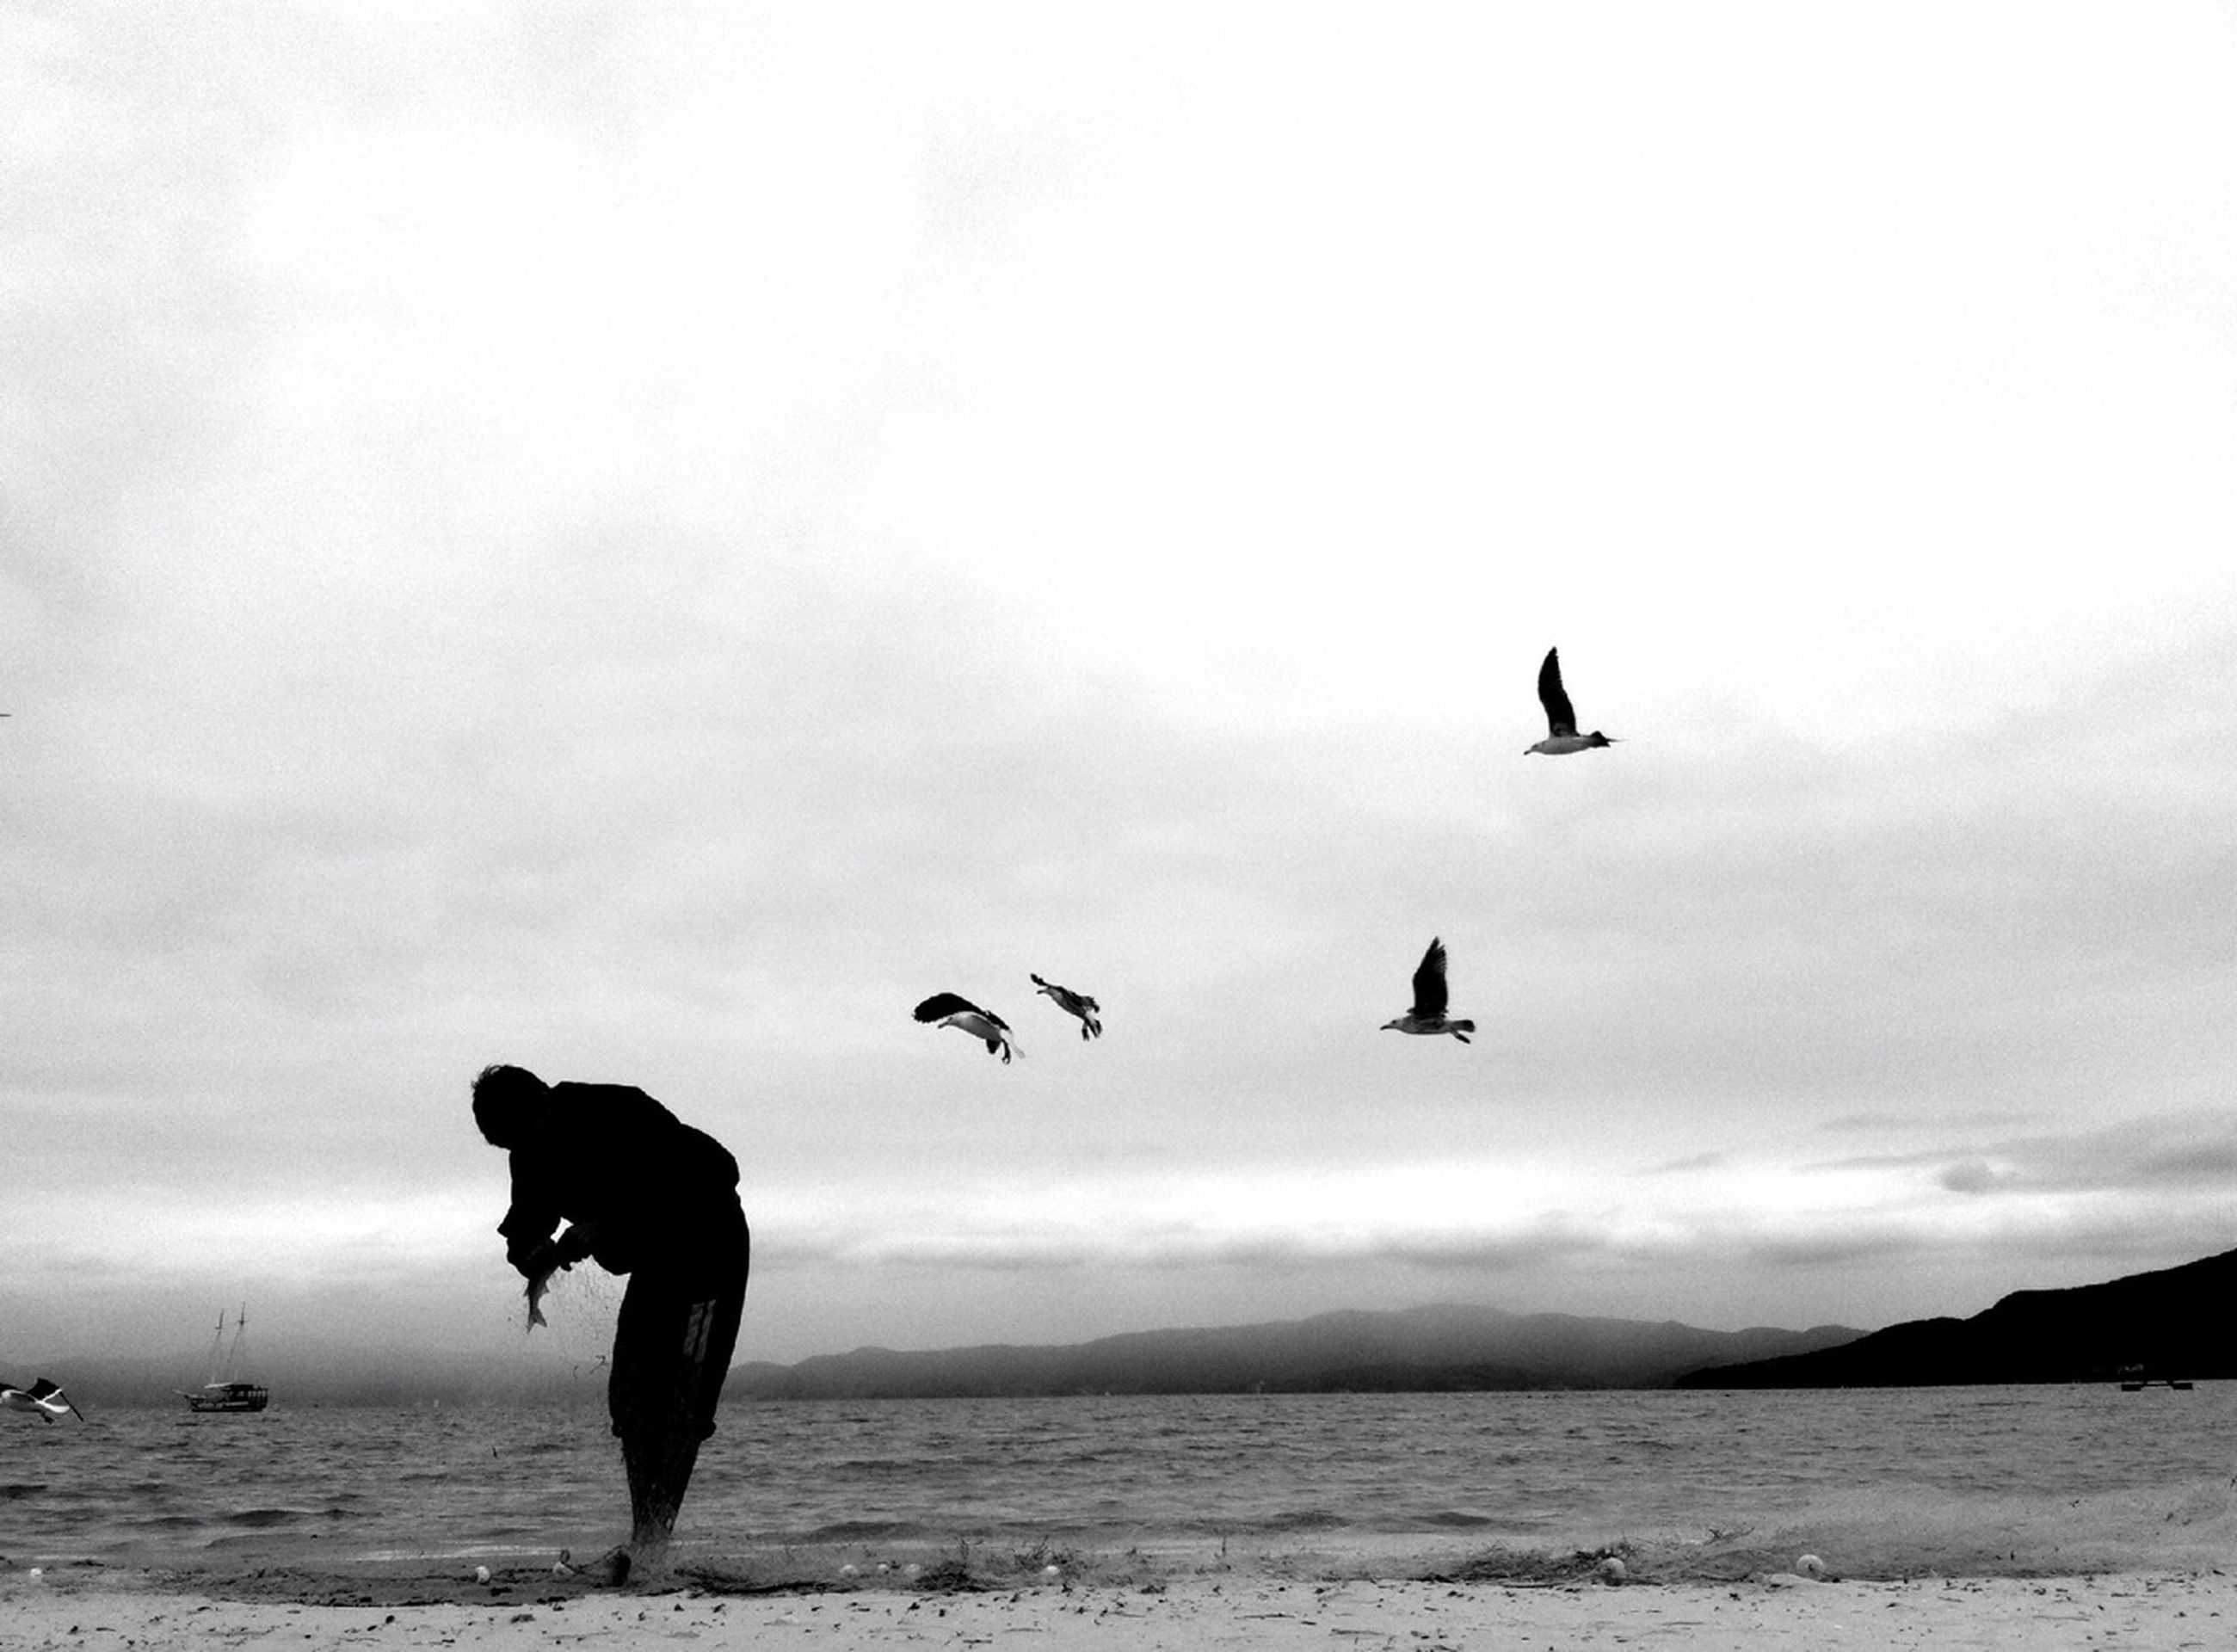 bird, sea, animal themes, water, silhouette, horizon over water, animals in the wild, flying, sky, wildlife, beach, seagull, nature, shore, beauty in nature, tranquility, spread wings, full length, tranquil scene, scenics